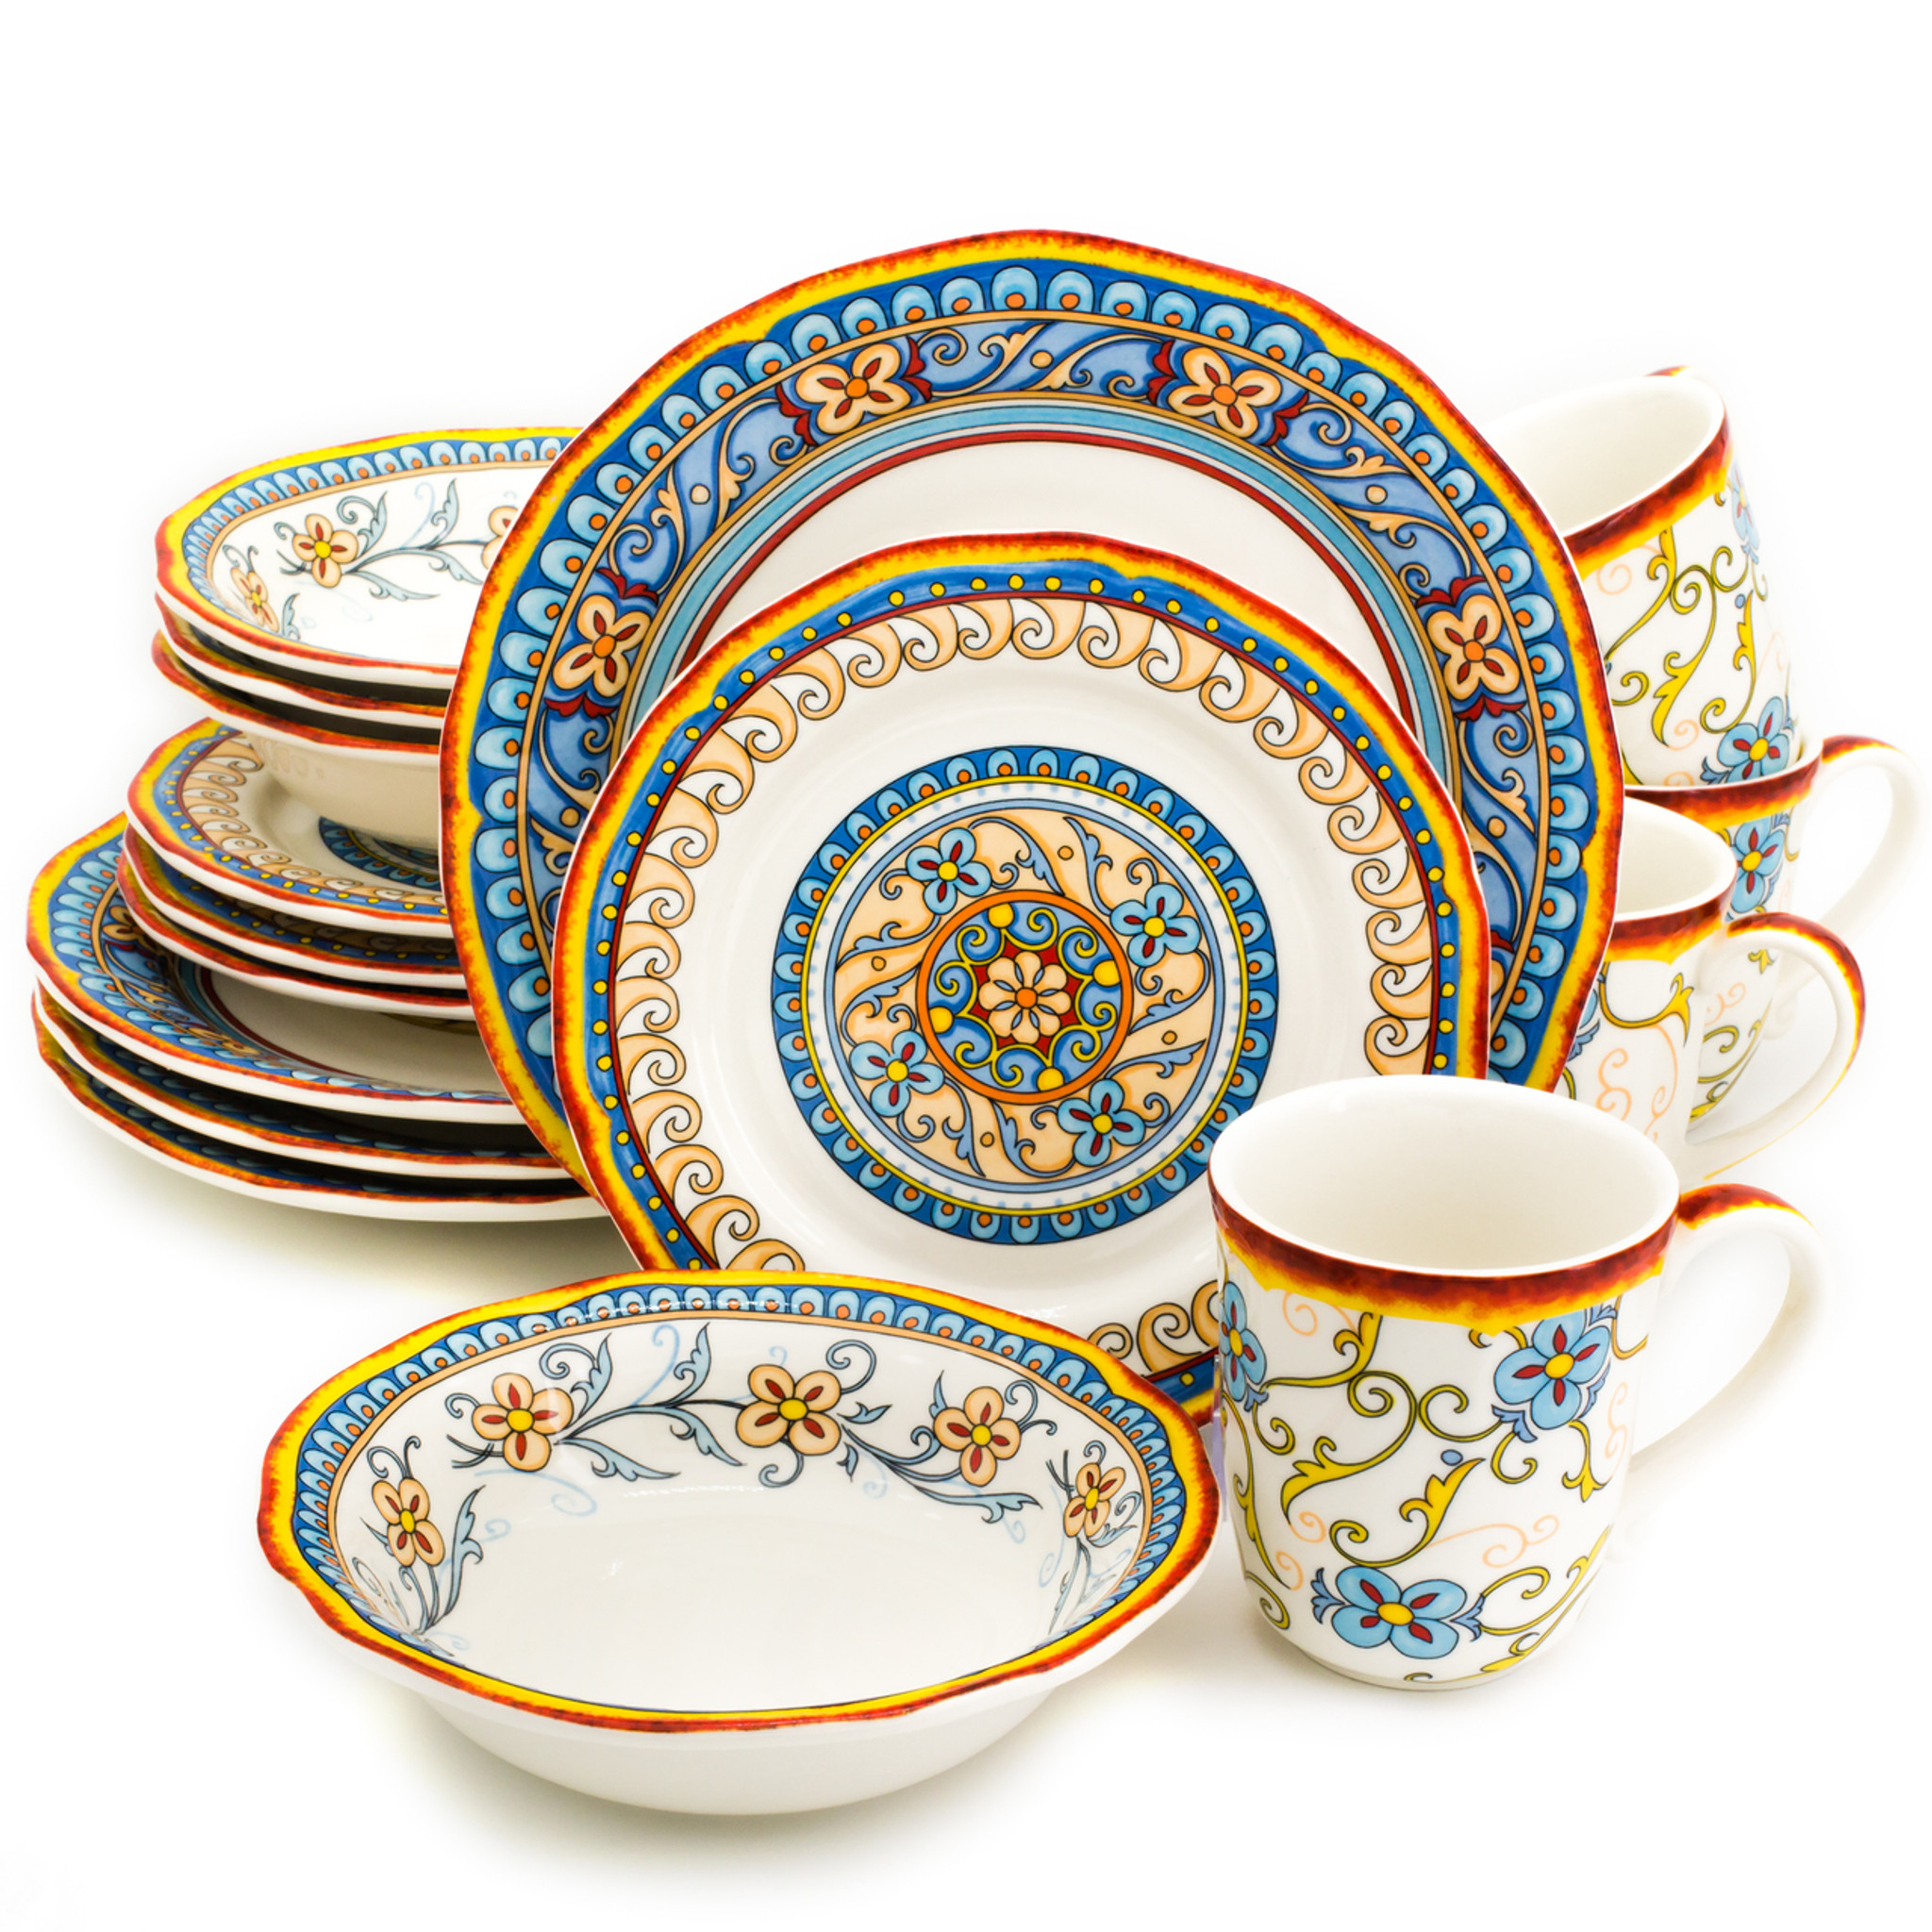 d8ee312a77b7 An ornately decorated 16 piece dinnerware set with scalloped edges and a  gold and turquoise floral